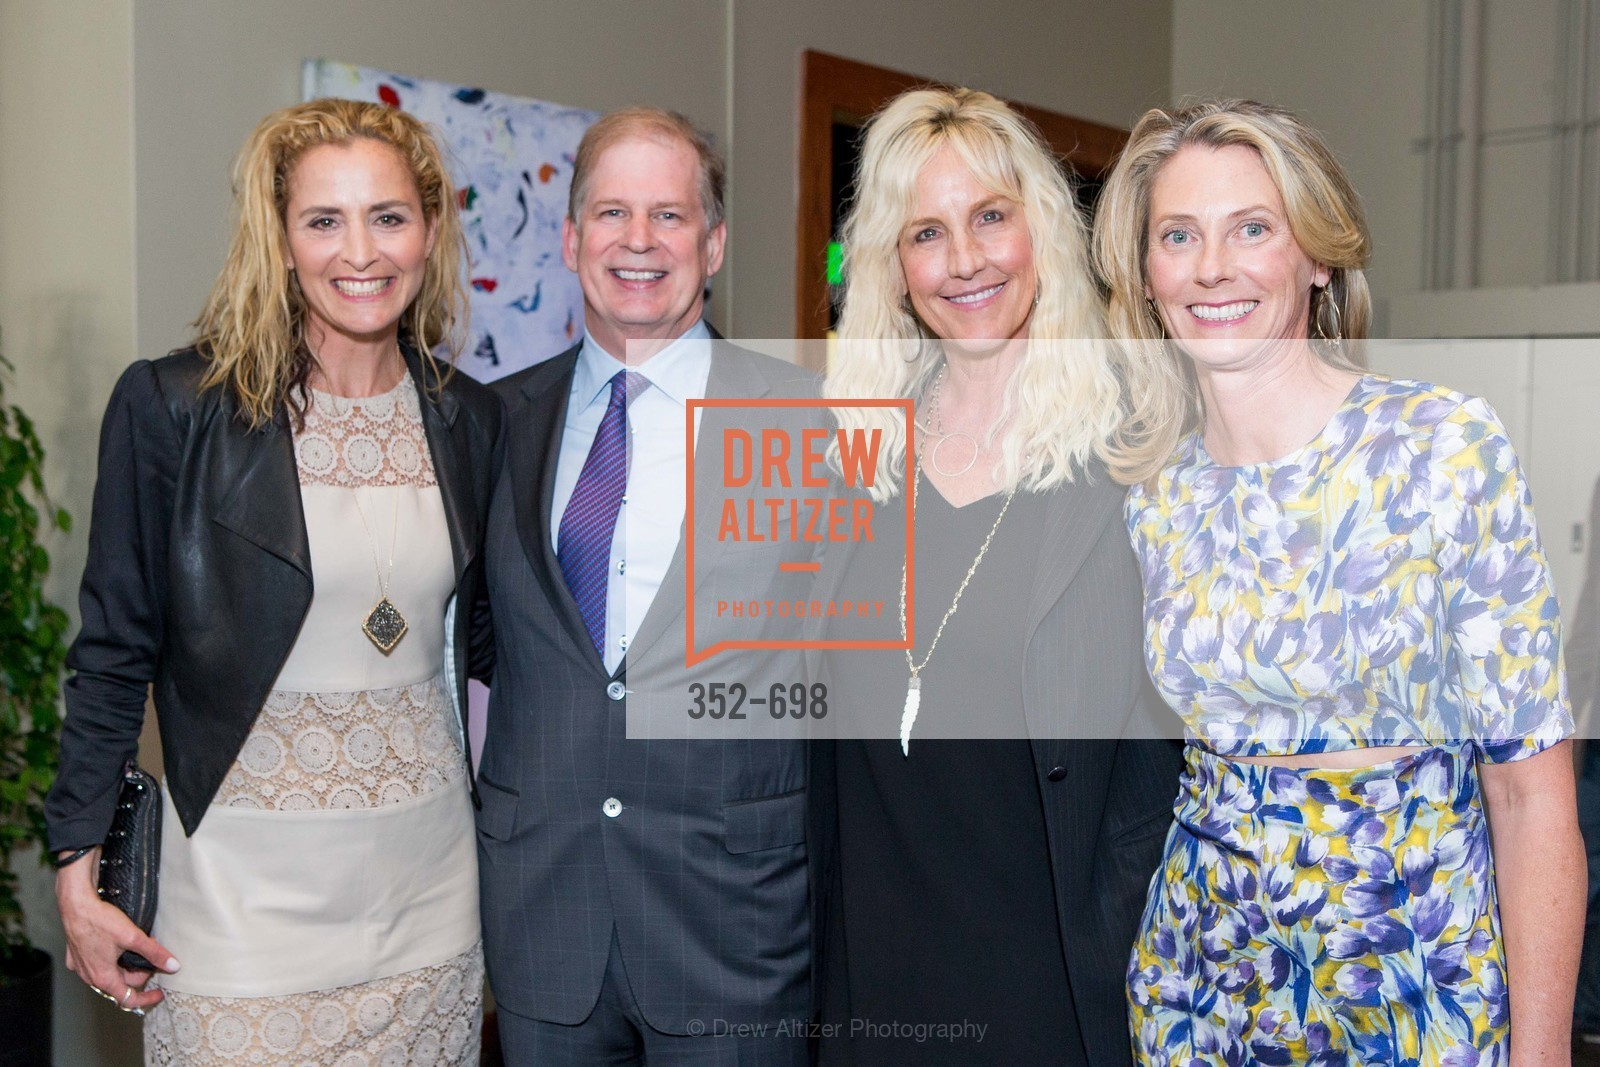 Ami Aronson, Robert Fetherstonehaugh, Erin Brockovich, Jennifer Caldwell, EWG's 6th Annual Earth Dinner, US, May 6th, 2015,Drew Altizer, Drew Altizer Photography, full-service agency, private events, San Francisco photographer, photographer california